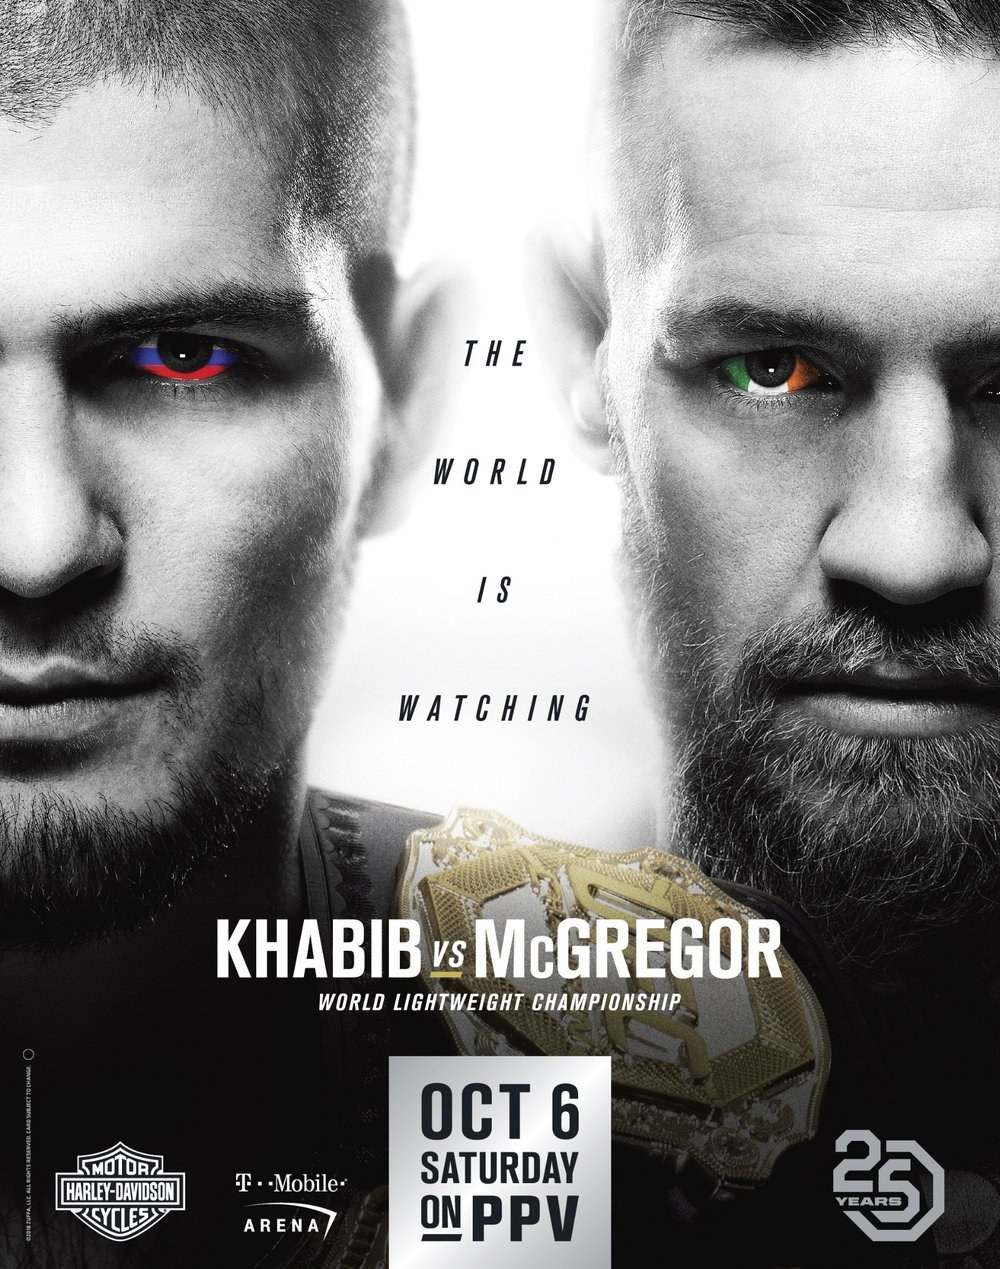 Khabib Vs McGregor Oct 6th.jpg